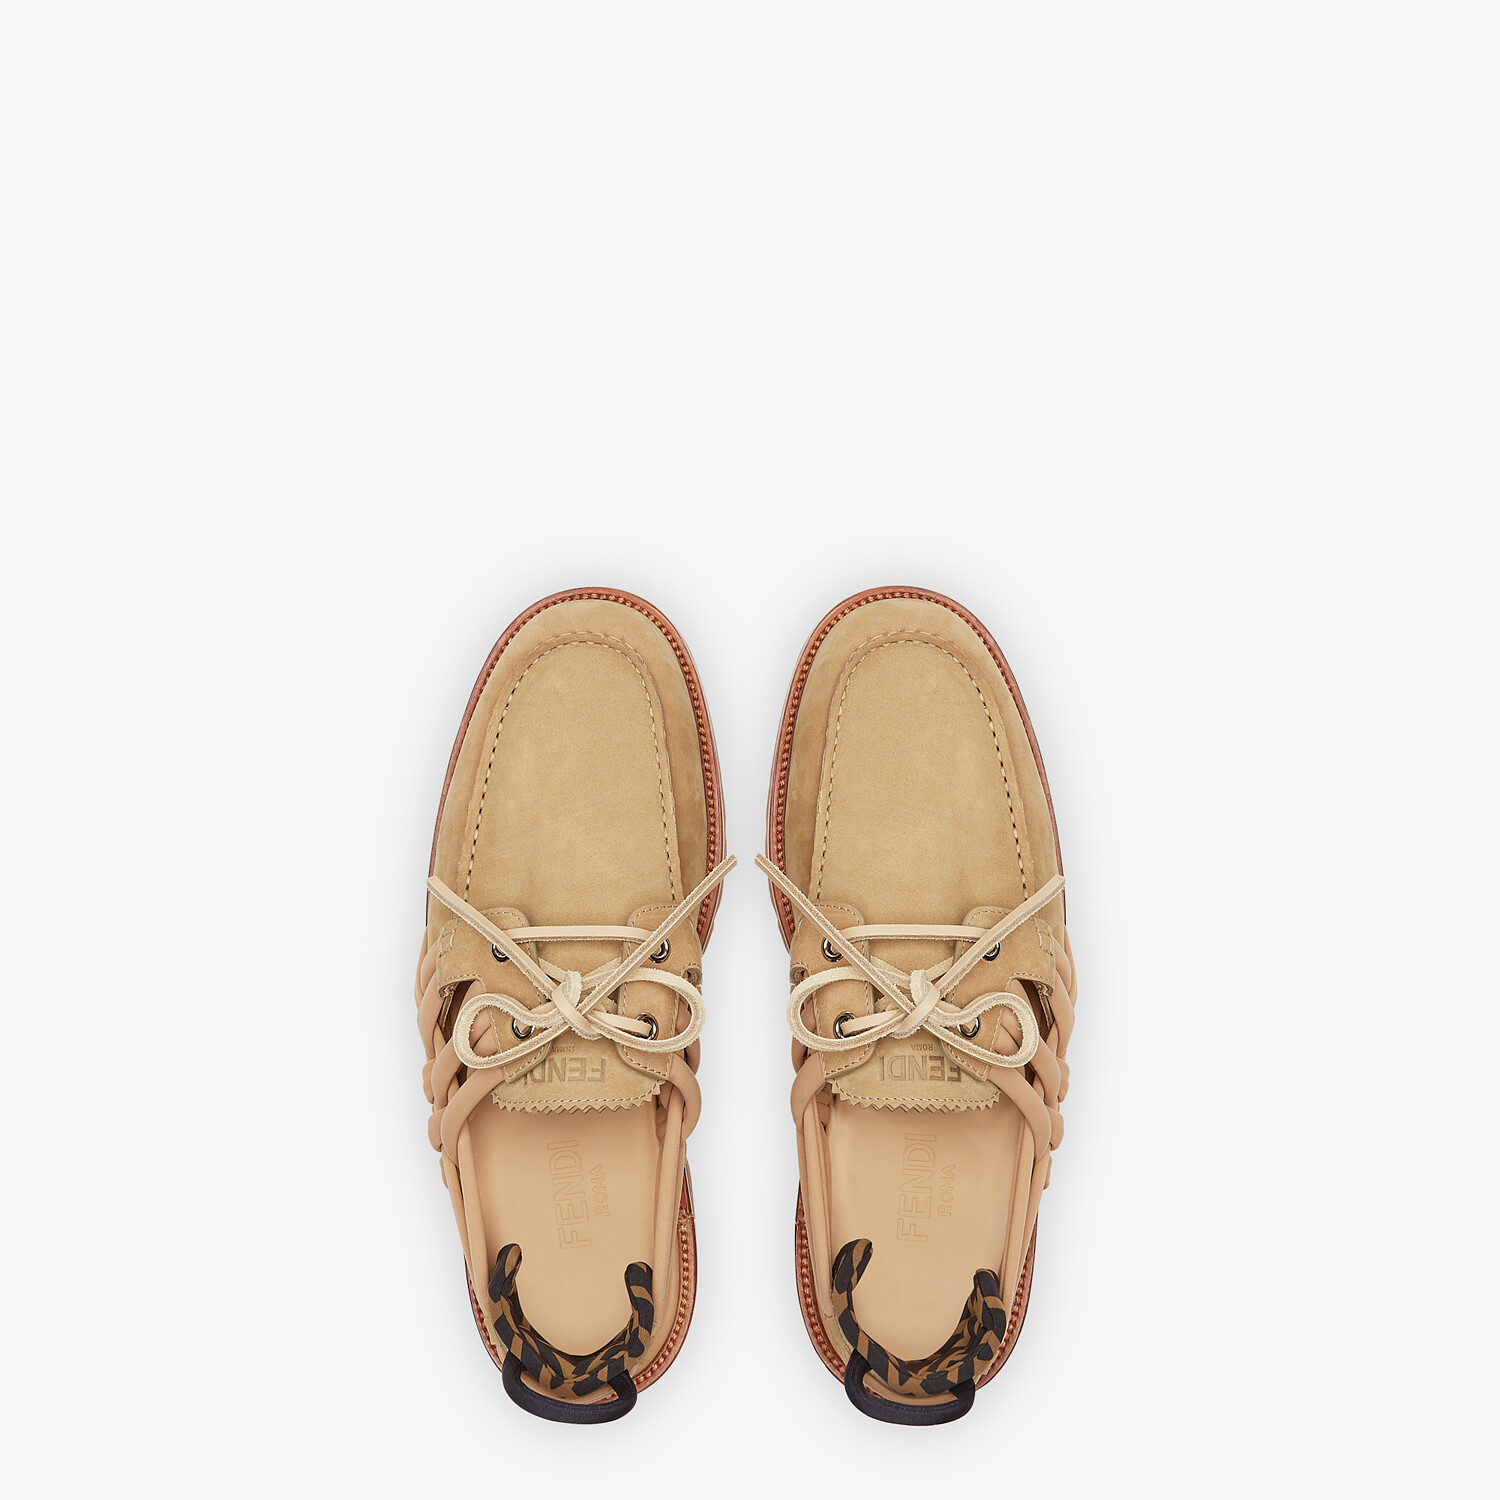 FENDI LOAFERS - Beige nubuck leather loafers - view 4 detail